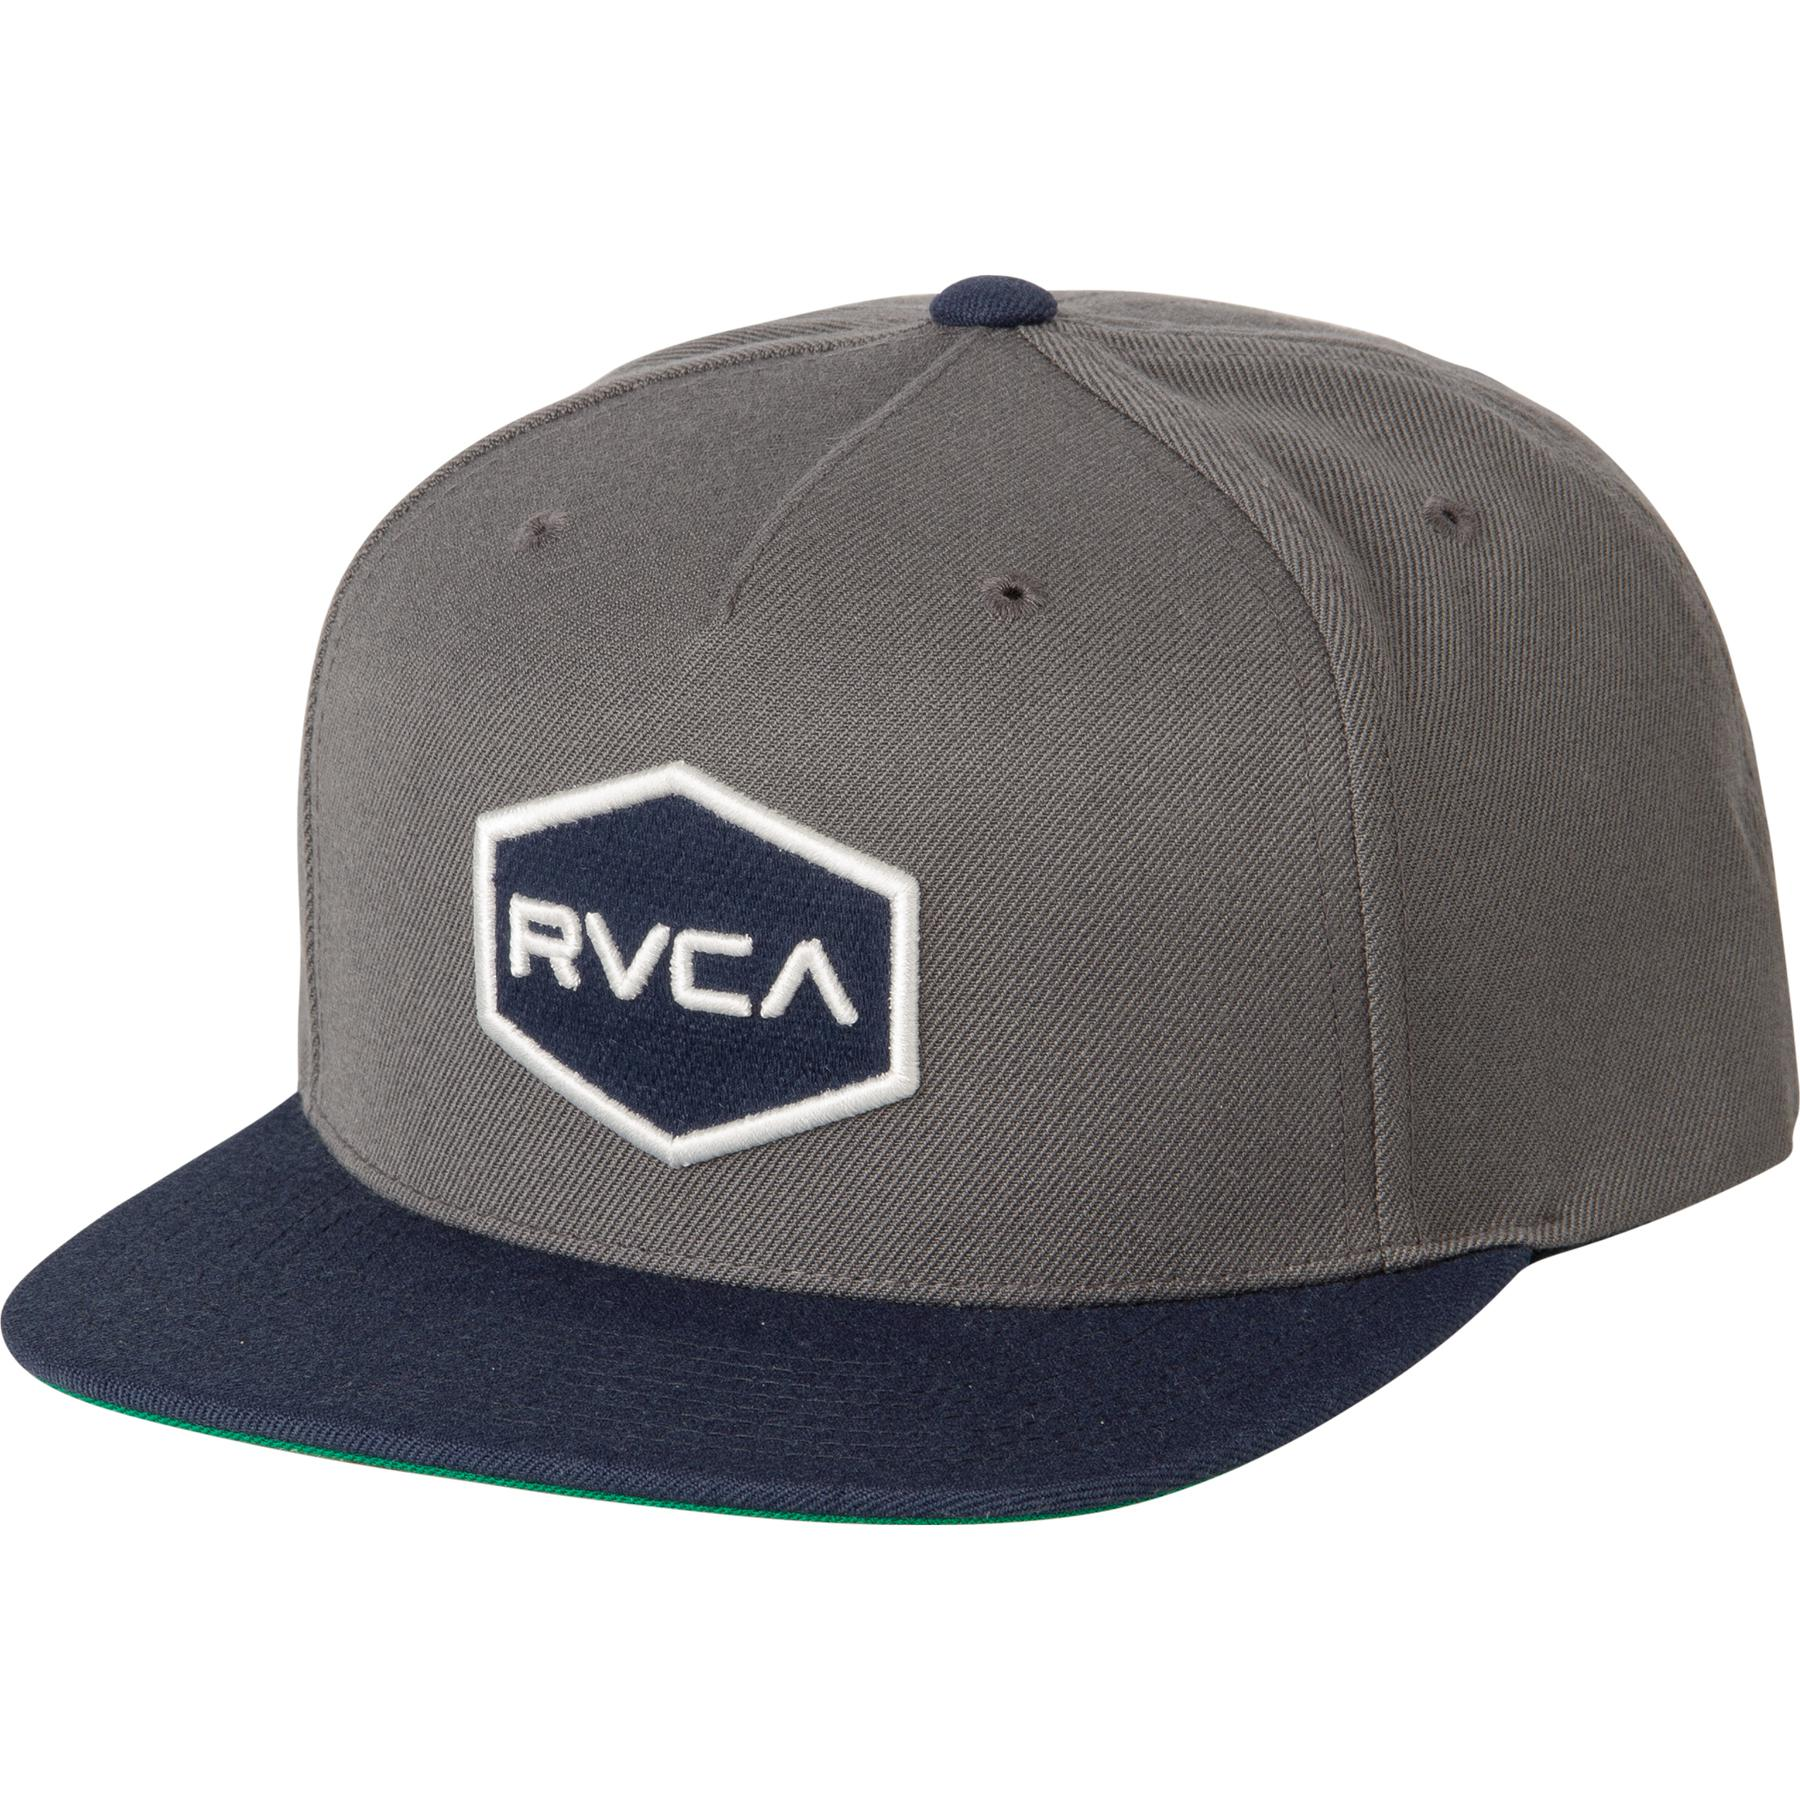 quality design 0f465 849e3 discount new rvca mens commonwealth snapback ii hat 01f0d cf65f  order  gallery. previously sold at rvca mens snapbacks 18888 823c7